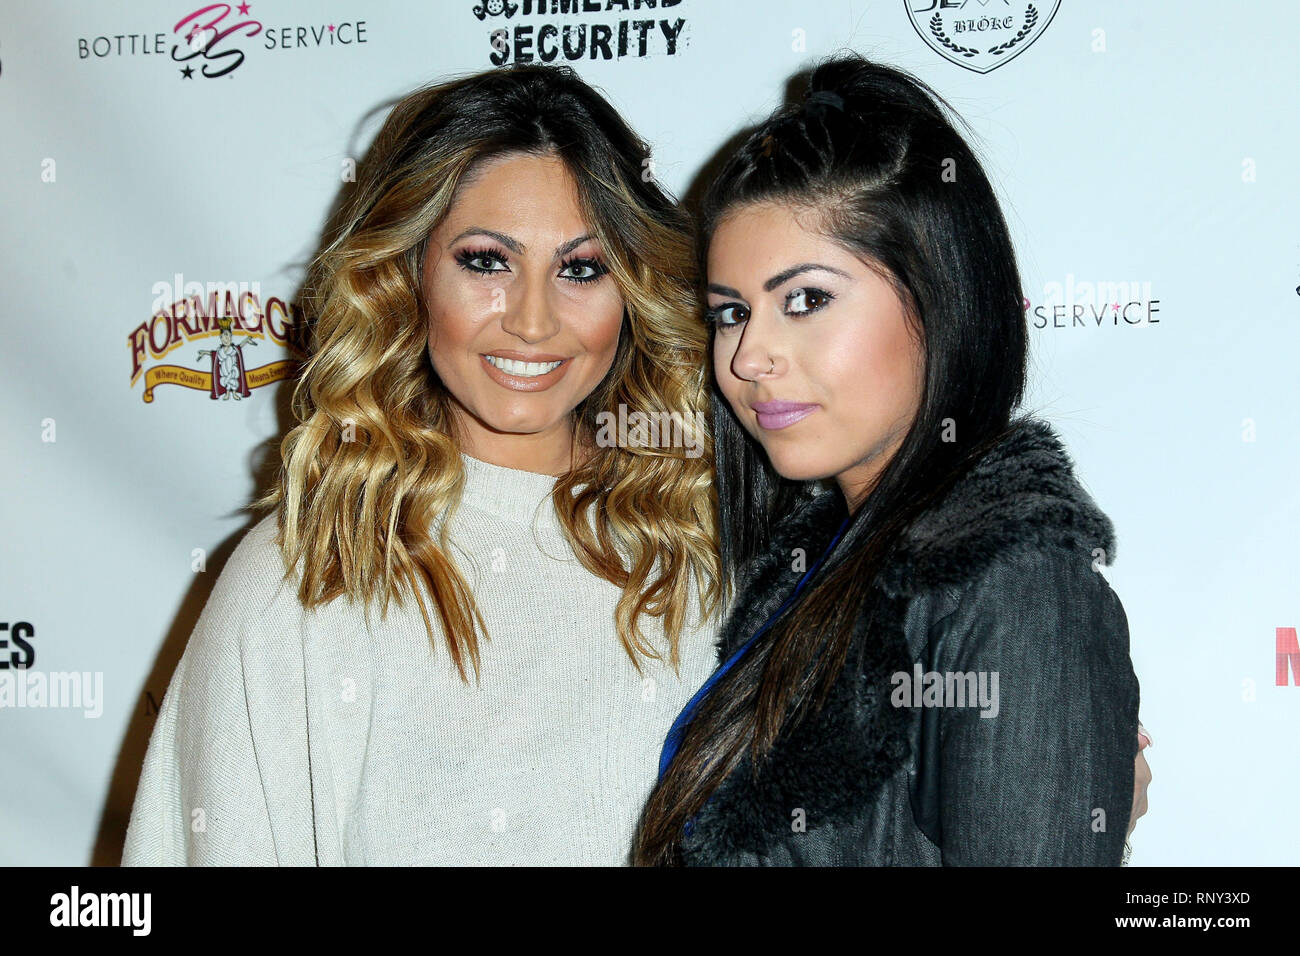 Tracy Dimarco And Guest High Resolution Stock Photography and ...